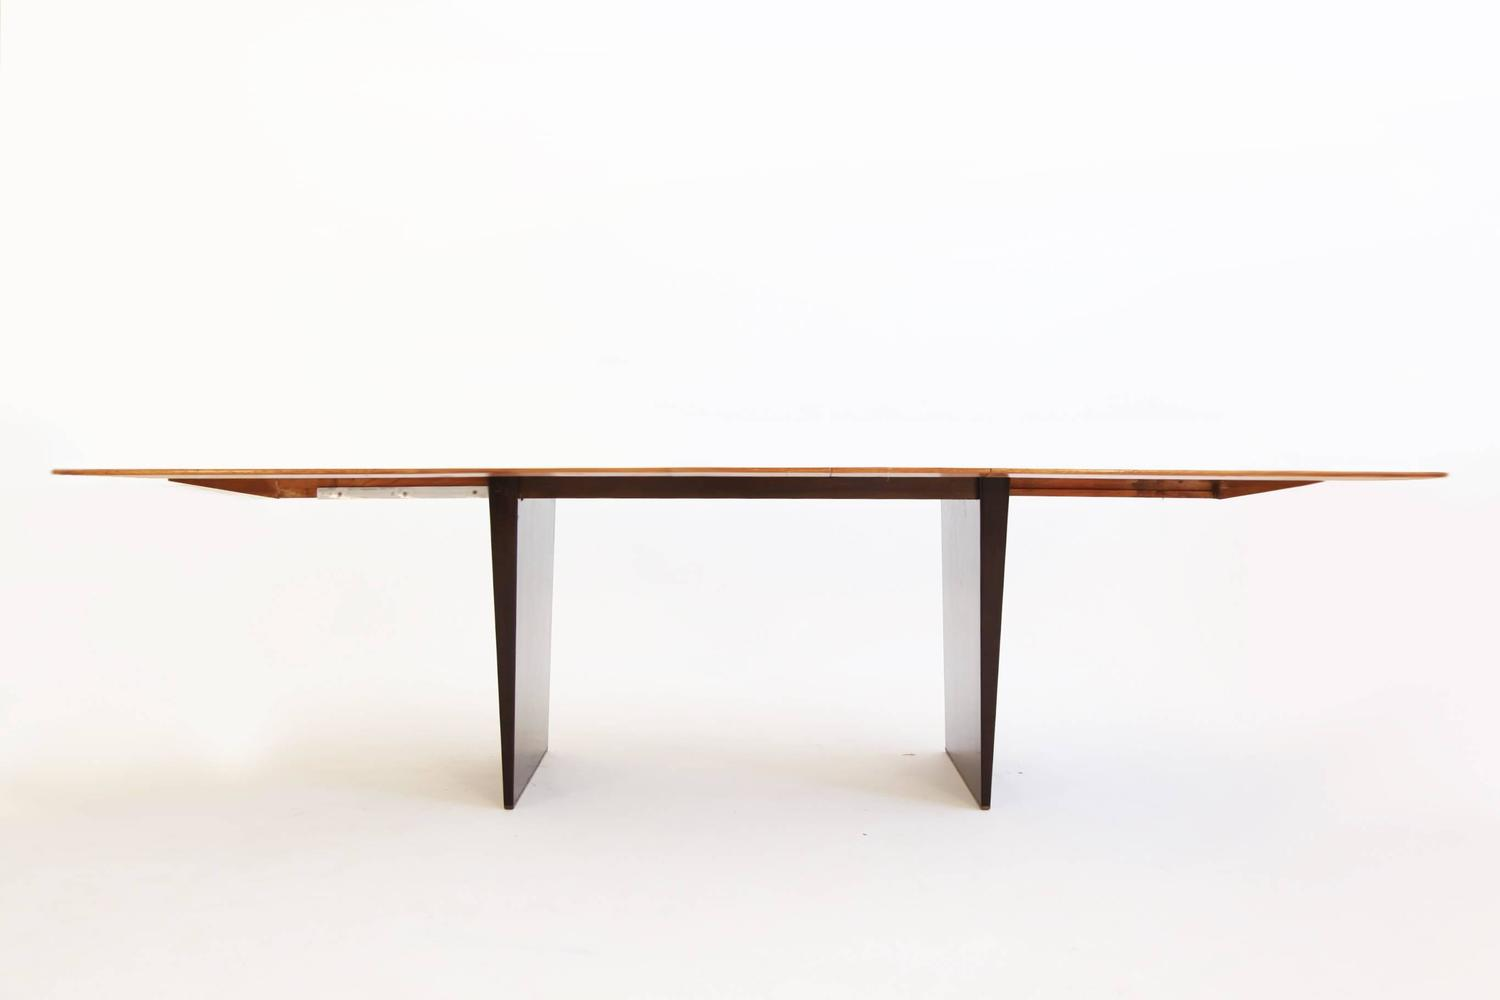 Edward wormley dining table at 1stdibs for 108 inch dining room table